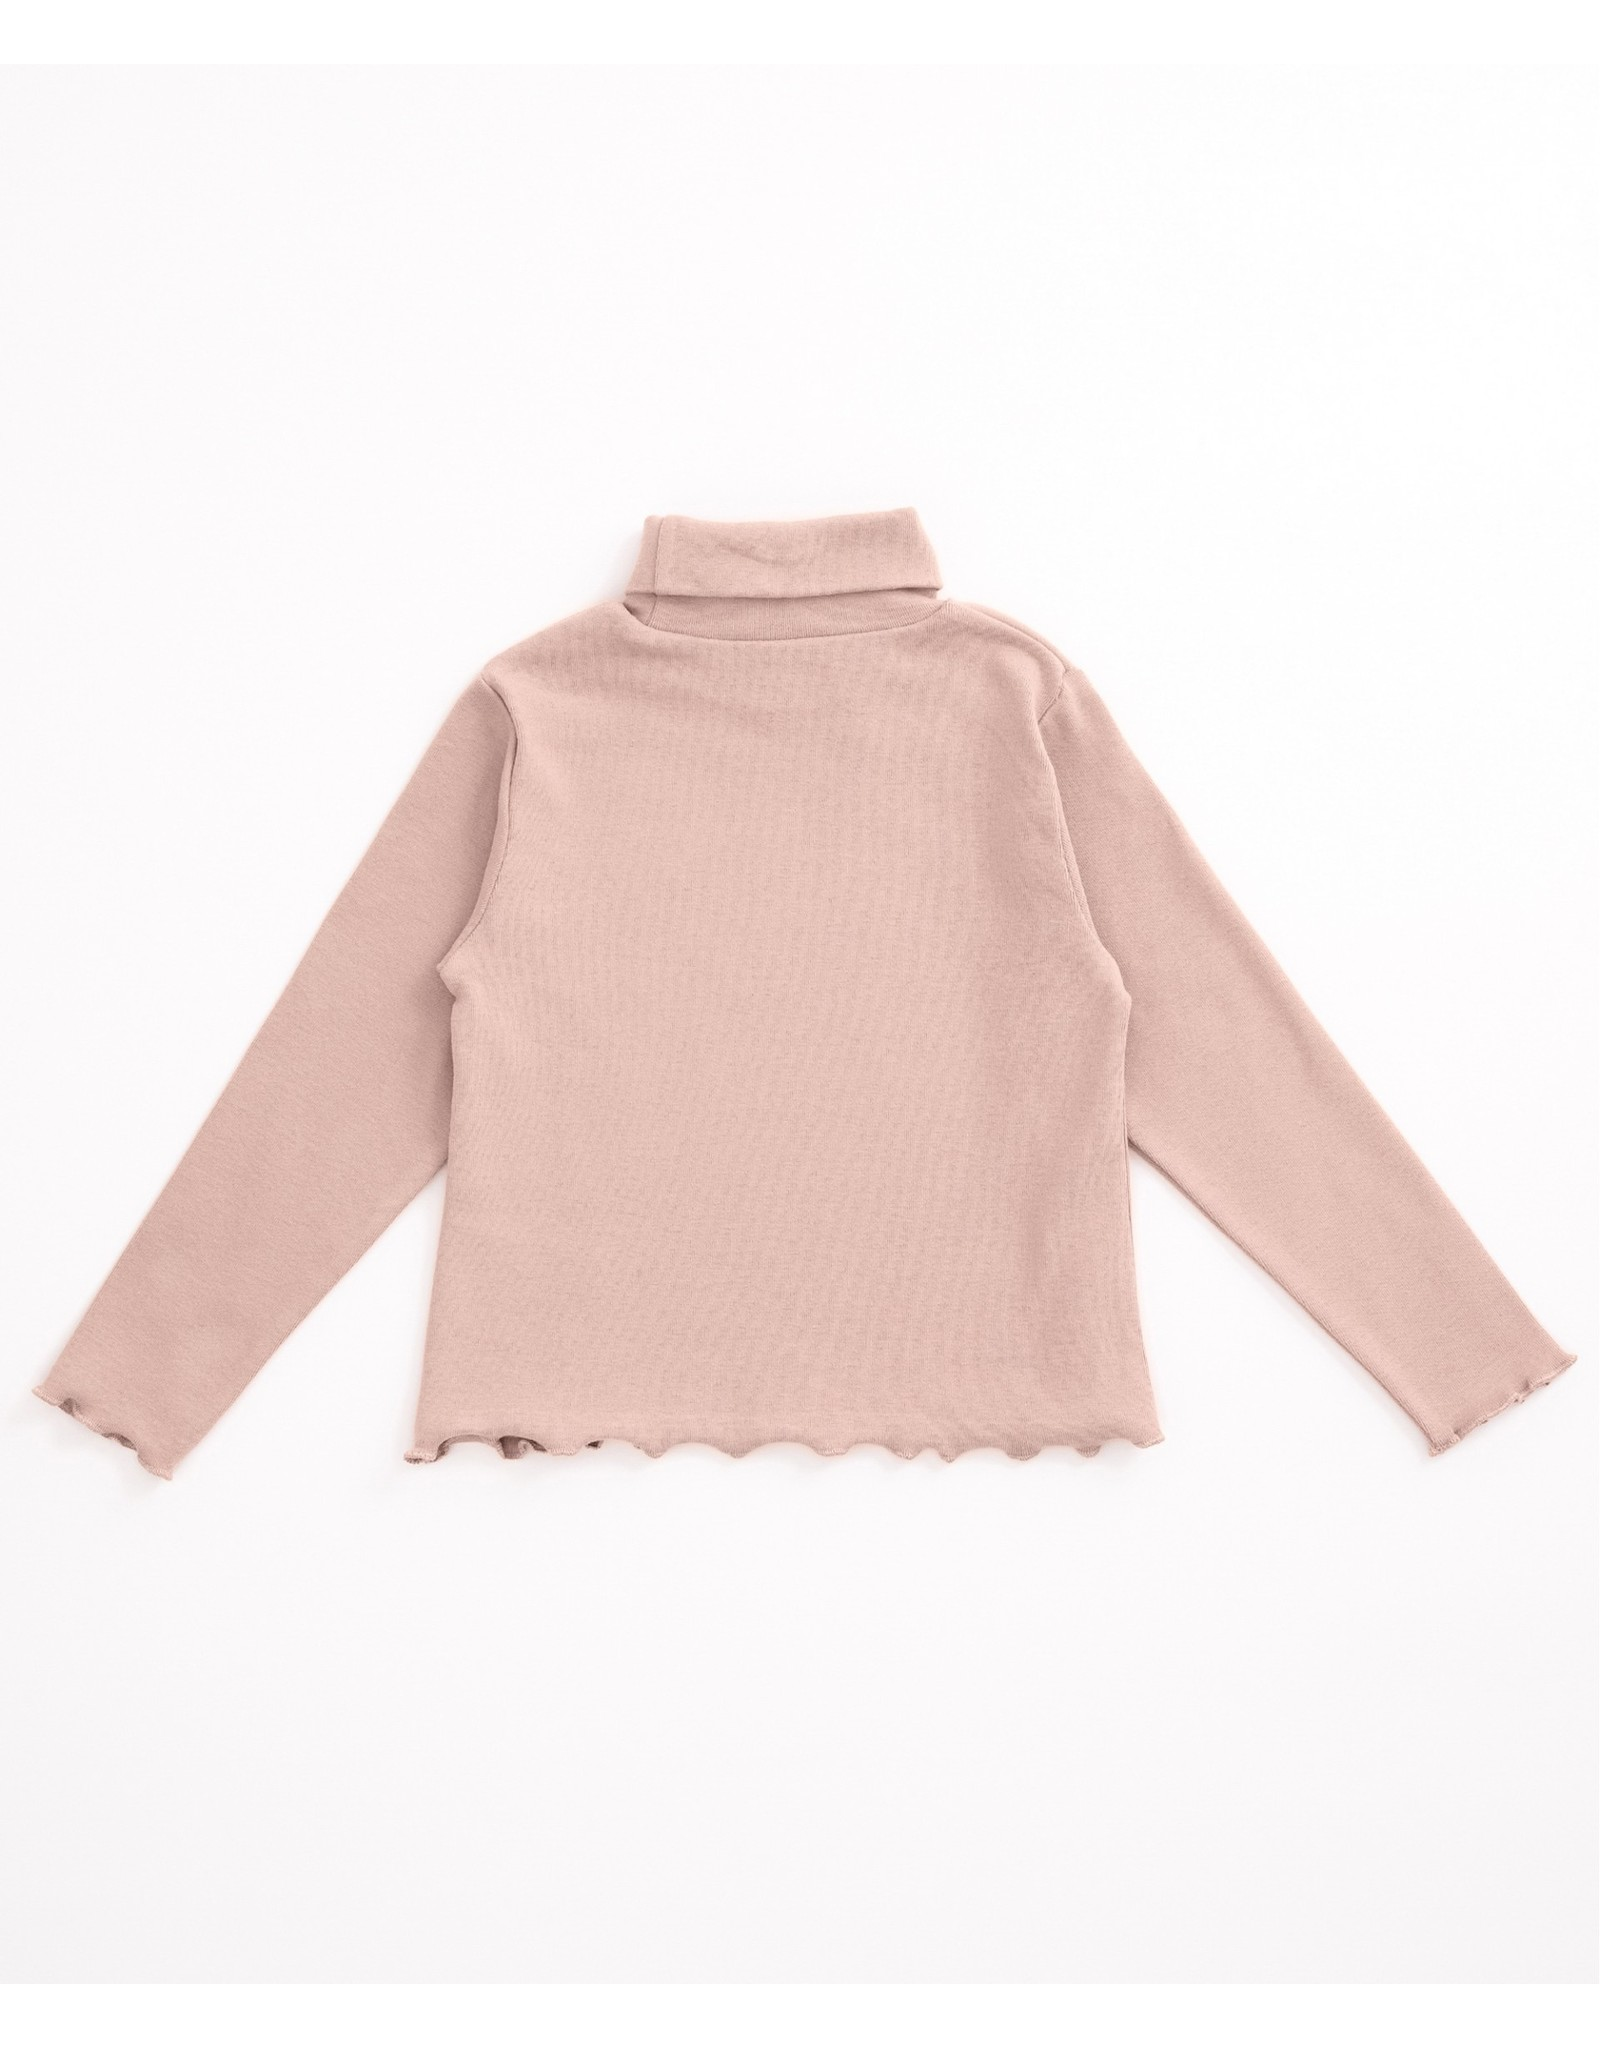 Play Up Play Up T-shirt in Organic Cotton with High Collar Jatopa